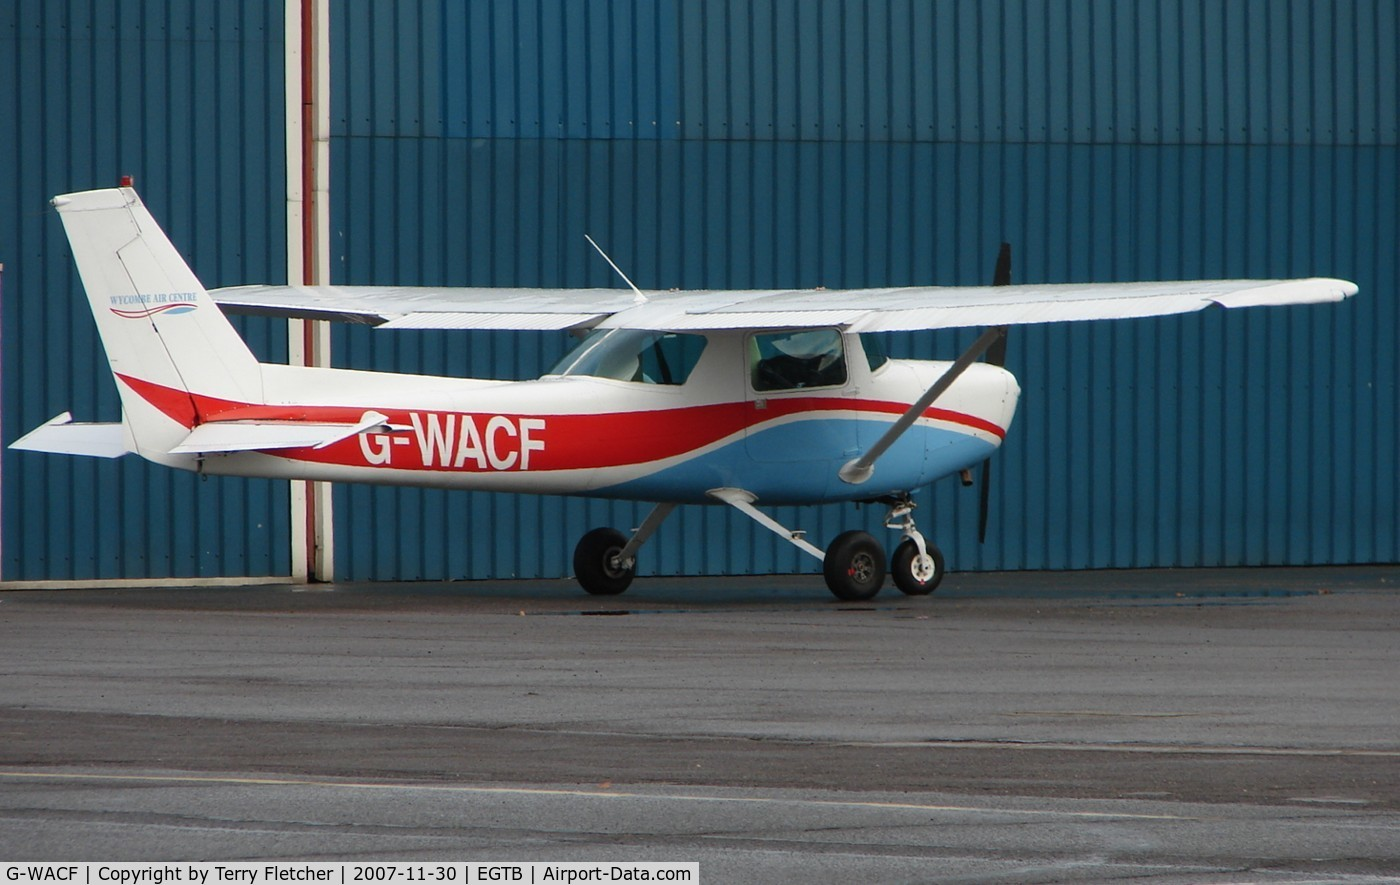 G-WACF, 1980 Cessna 152 C/N 152-84852, C152 at Wycombe Air Park - Booker Airfield